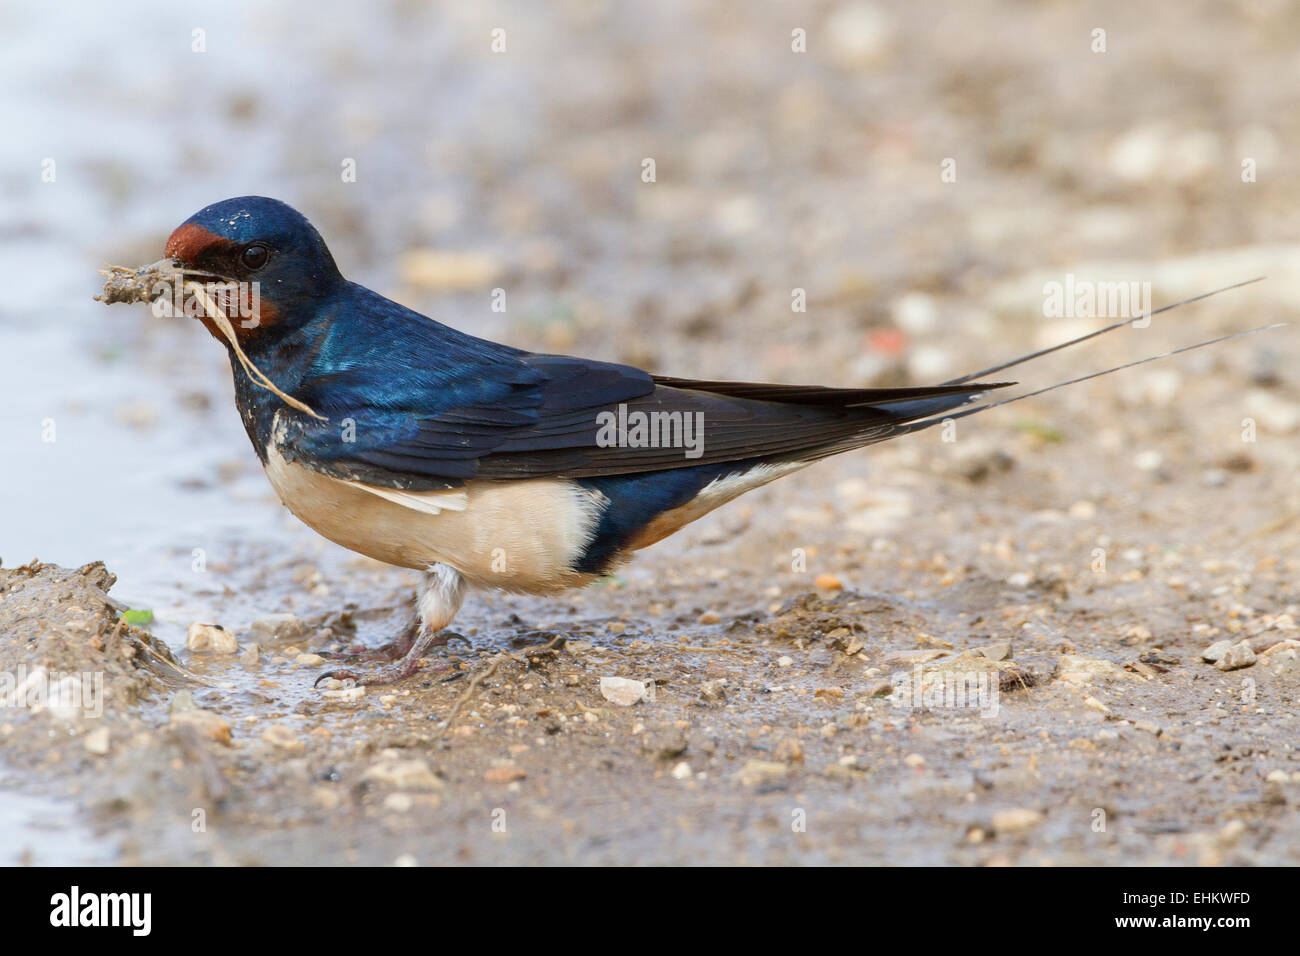 Adult Barn Swallow - Stock Image